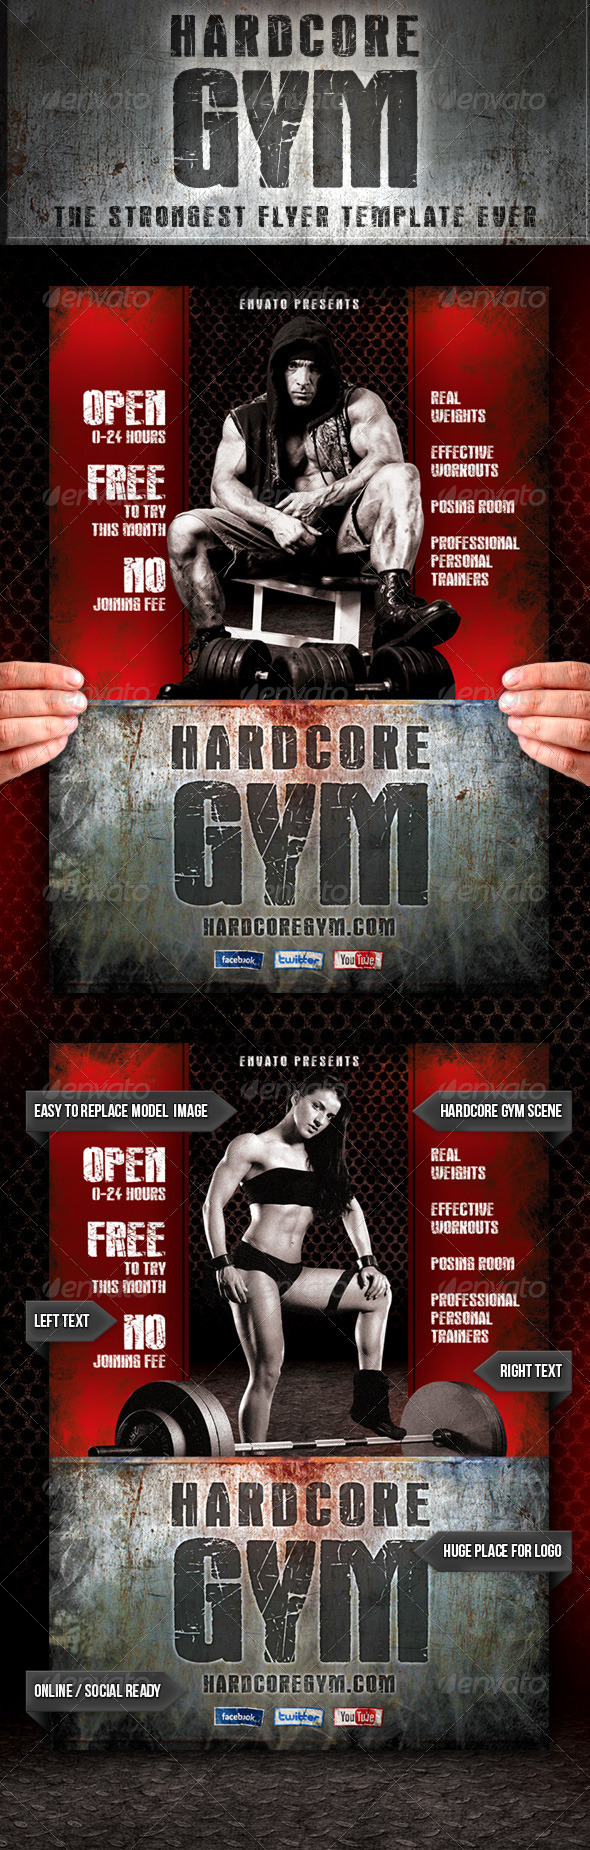 hardcore gym flyer com your template resource hardcore gym flyer